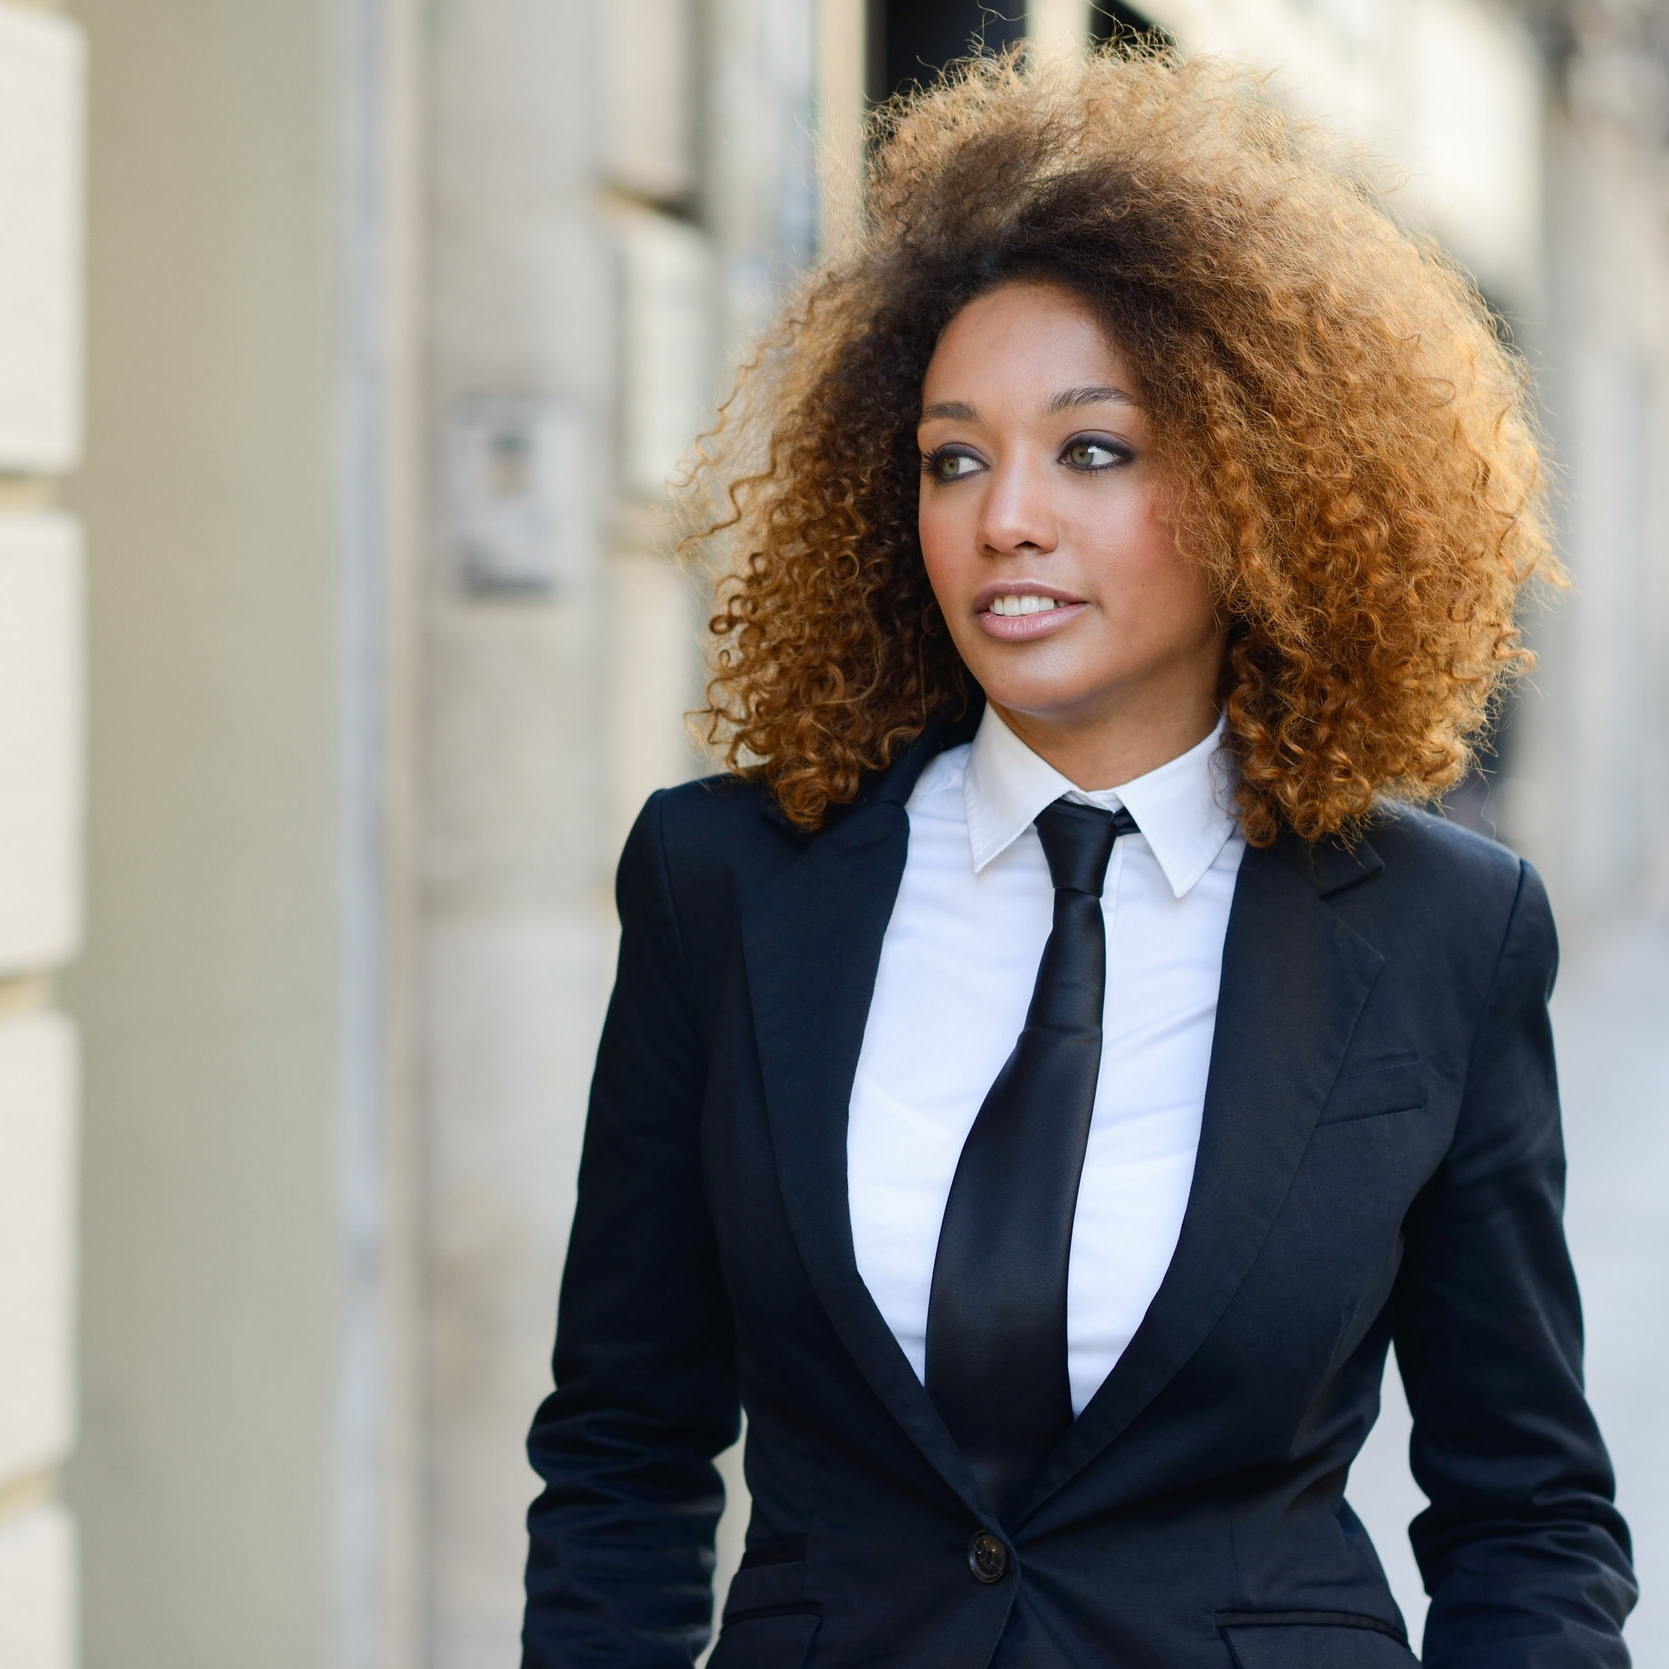 Businesswoman-wearing-suit.jpg